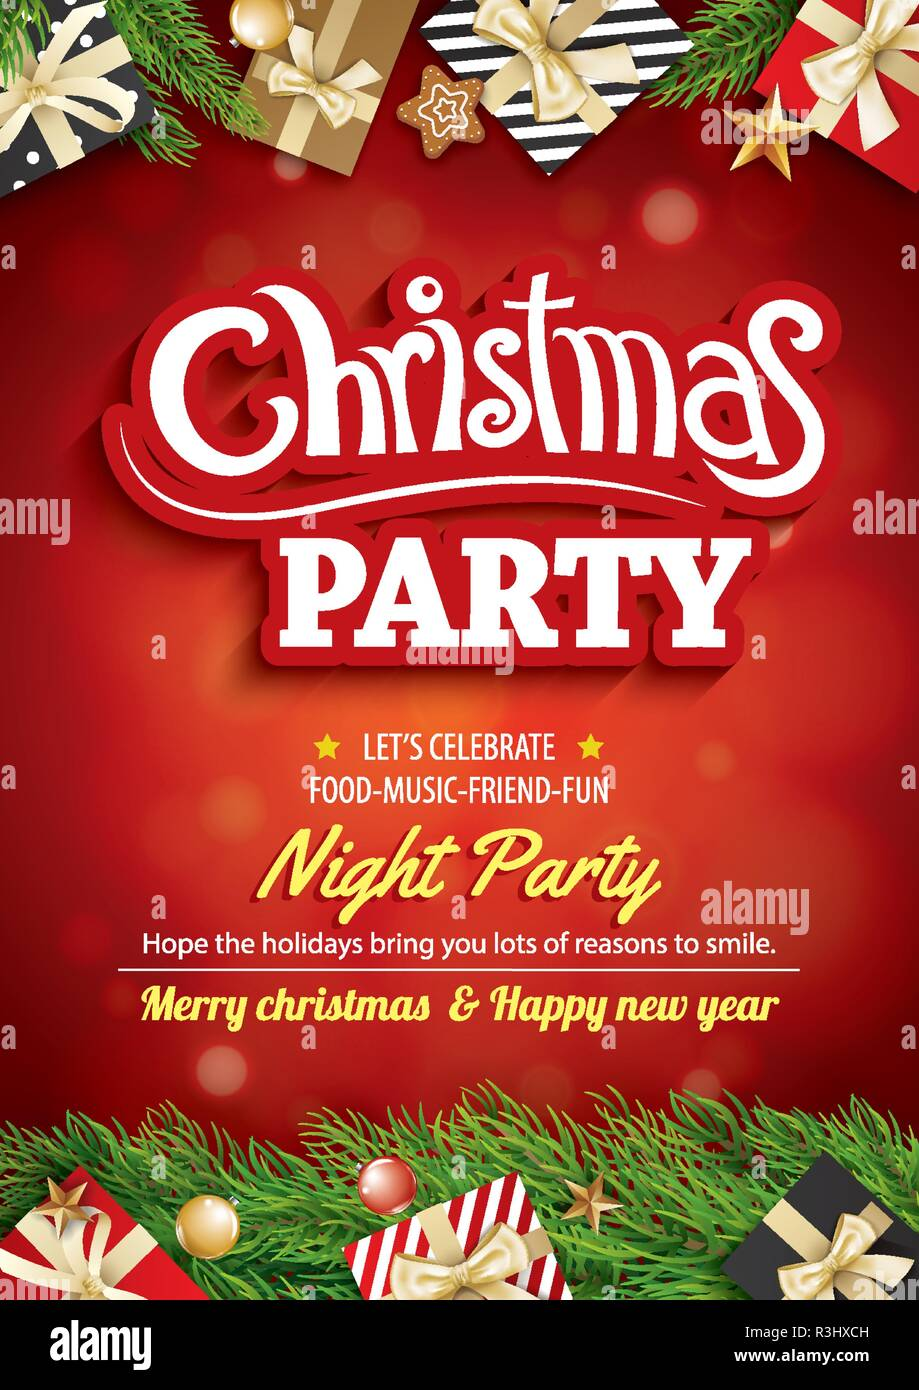 Merry Christmas Party And Greeting Card On Red Background